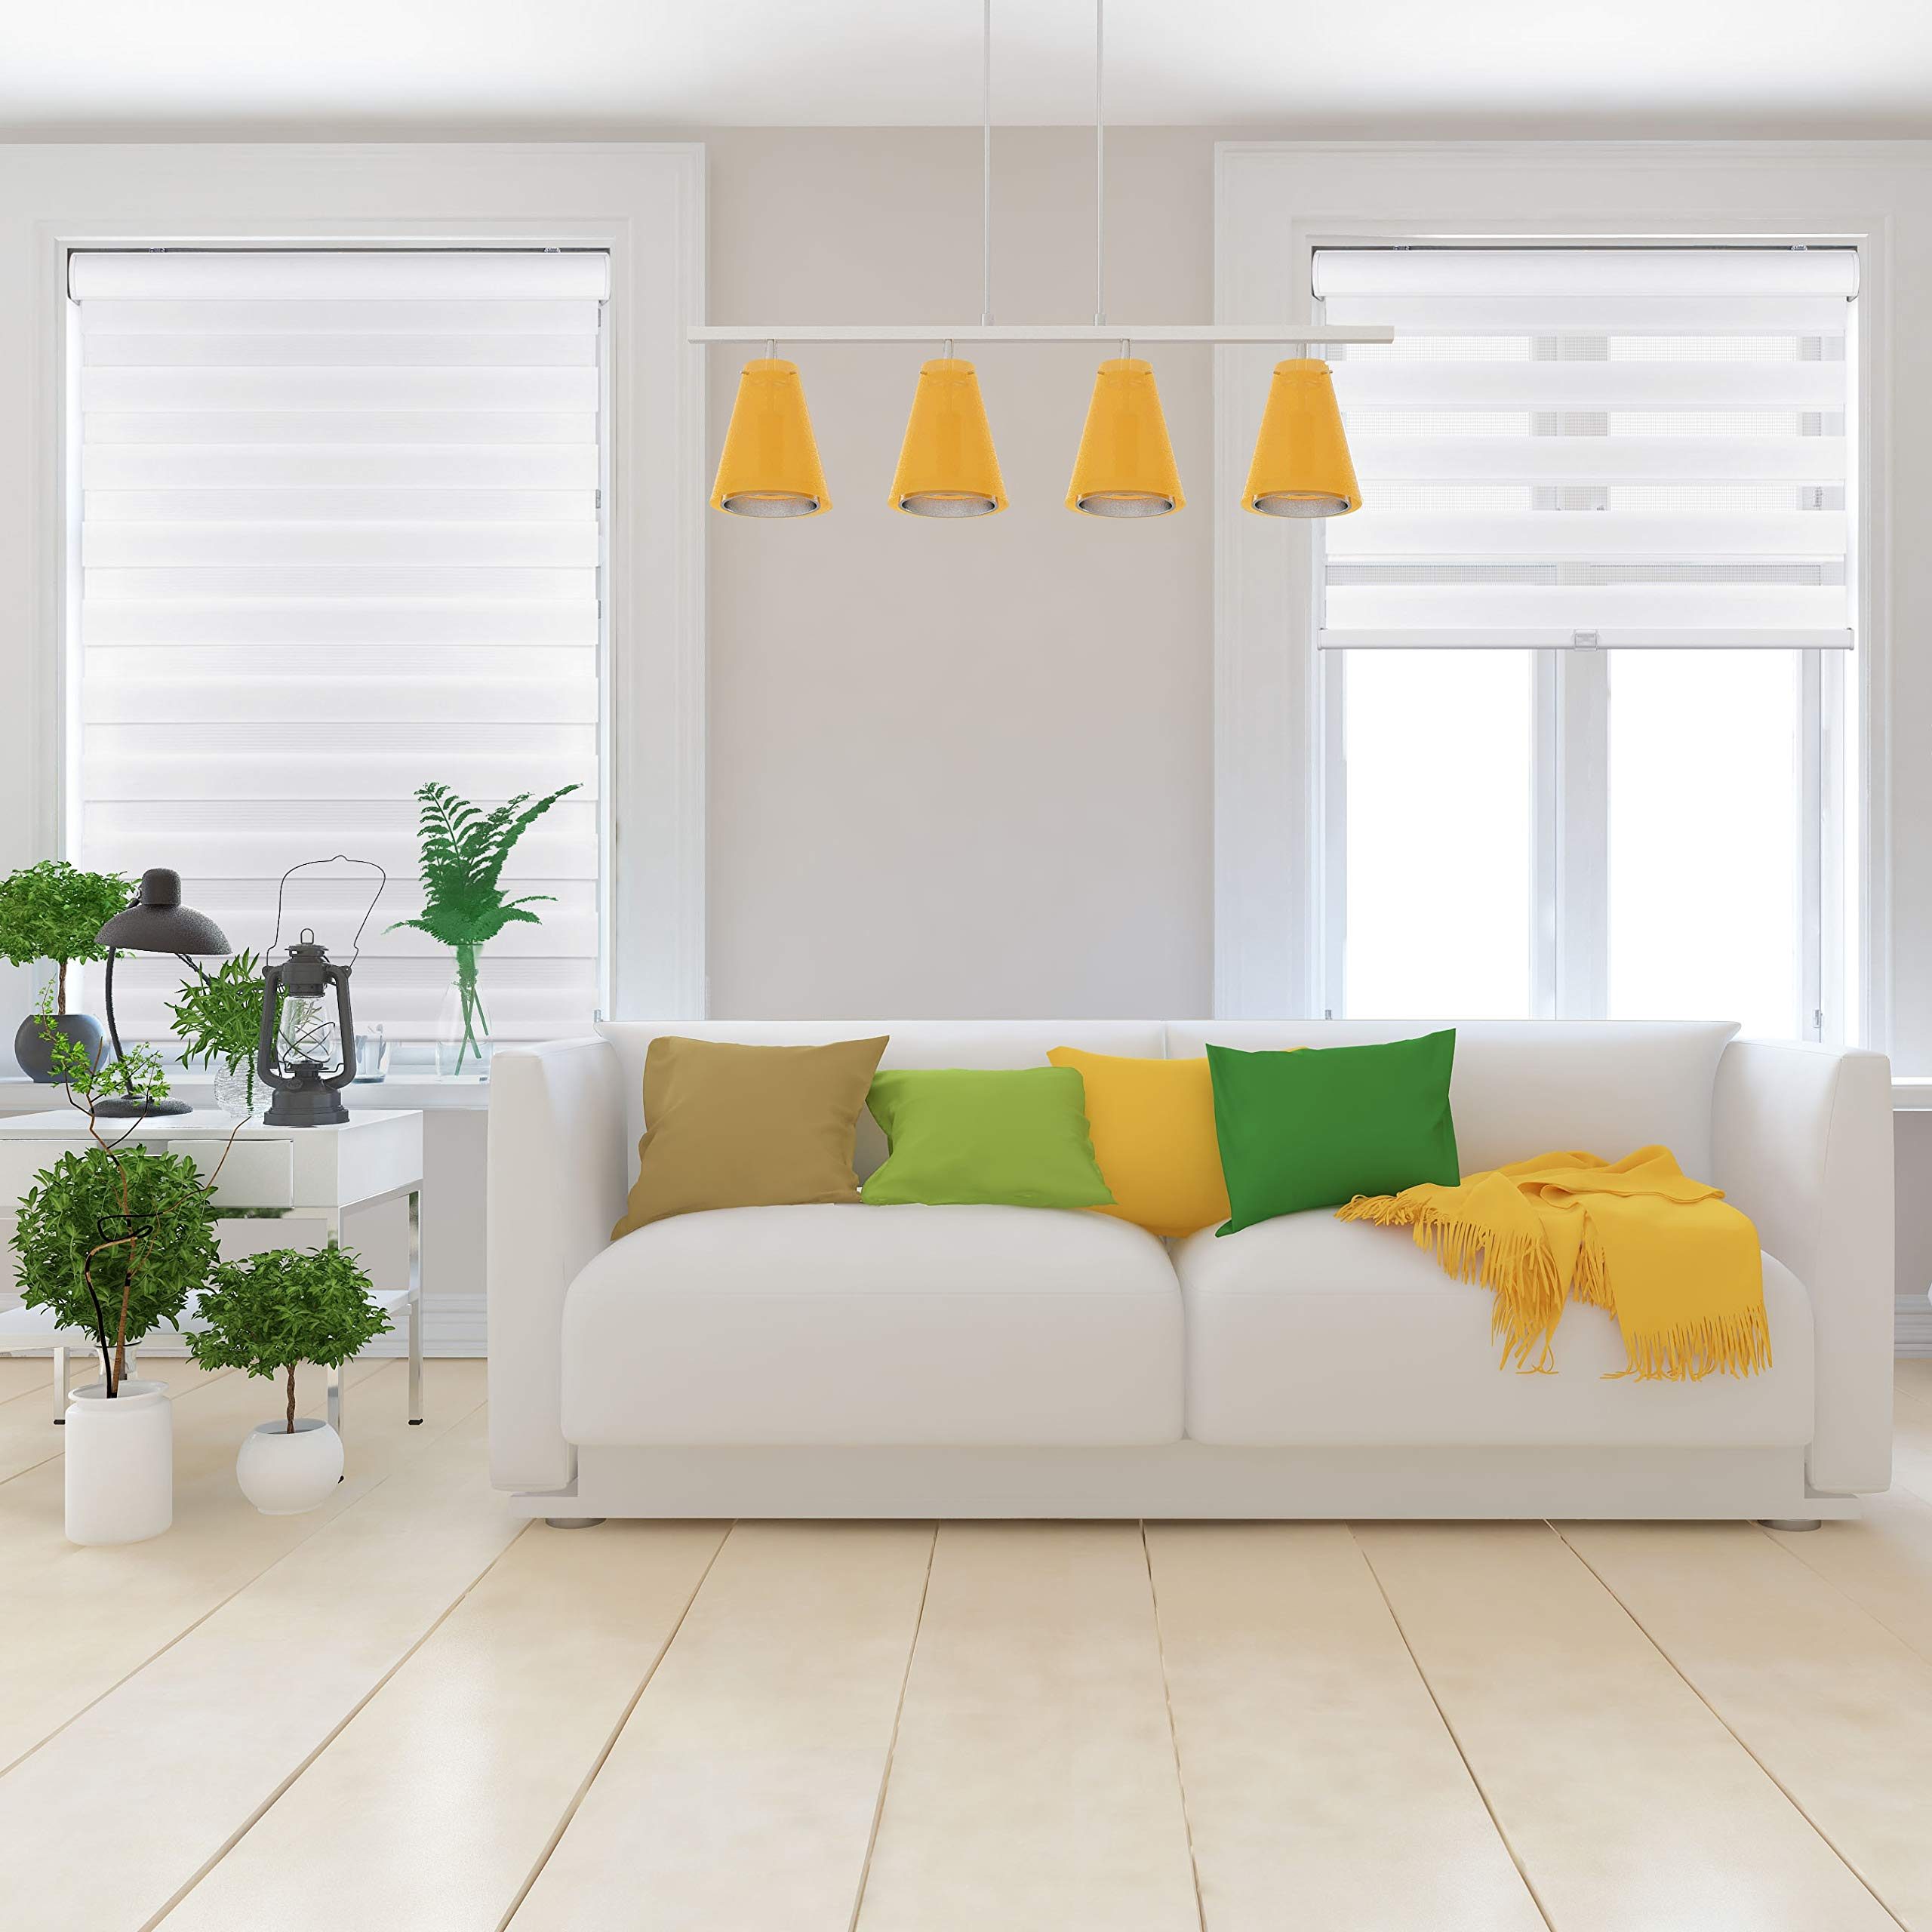 Arlo Blinds Cordless Zebra Roller Shades 24'' W x 60'' H, White Horizontal Window Blinds by Arlo Blinds